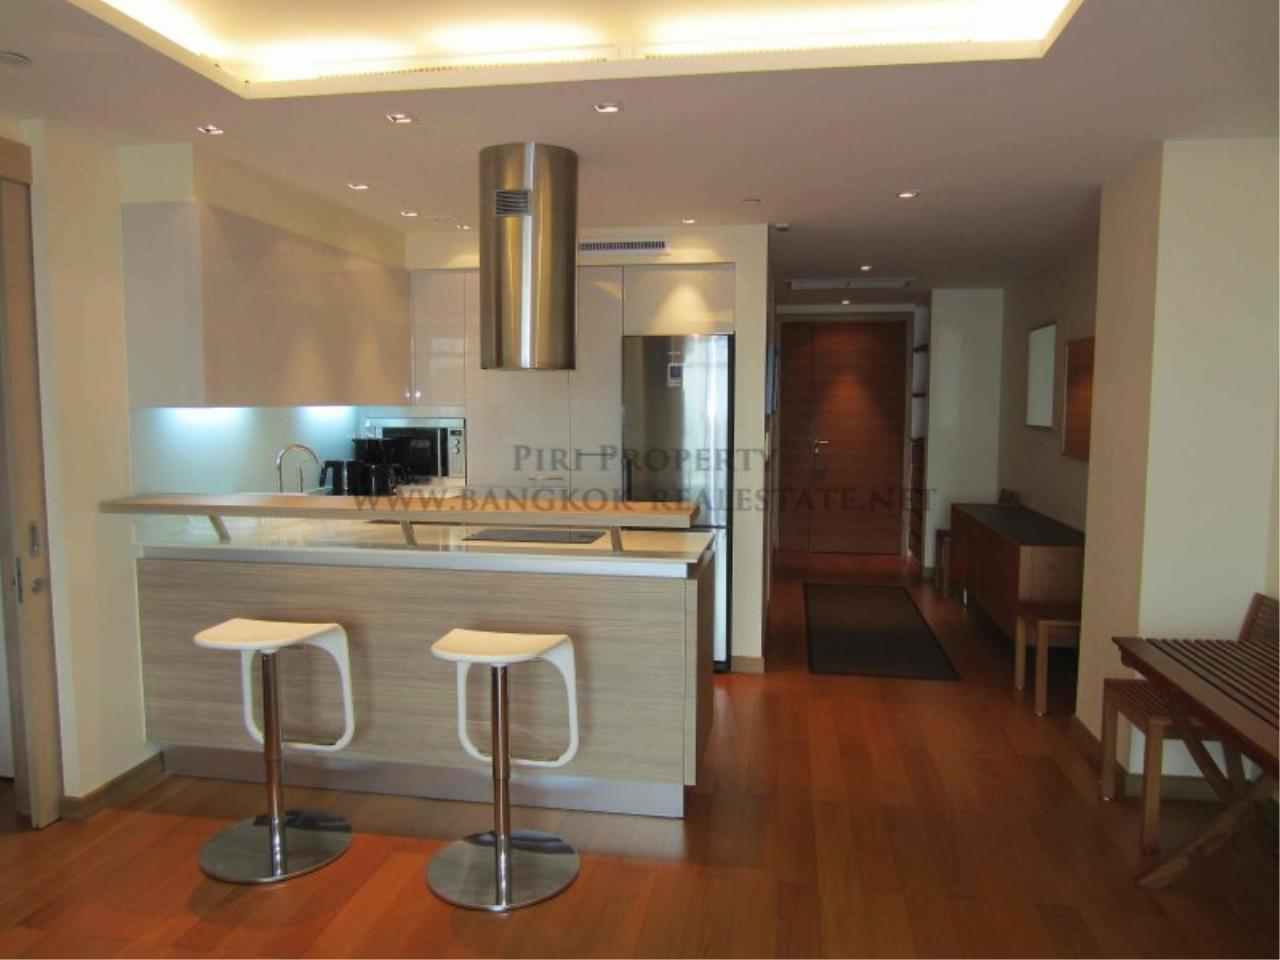 Piri Property Agency's Super spacious and modern 1 Bedroom Condo for Rent in Ari 4